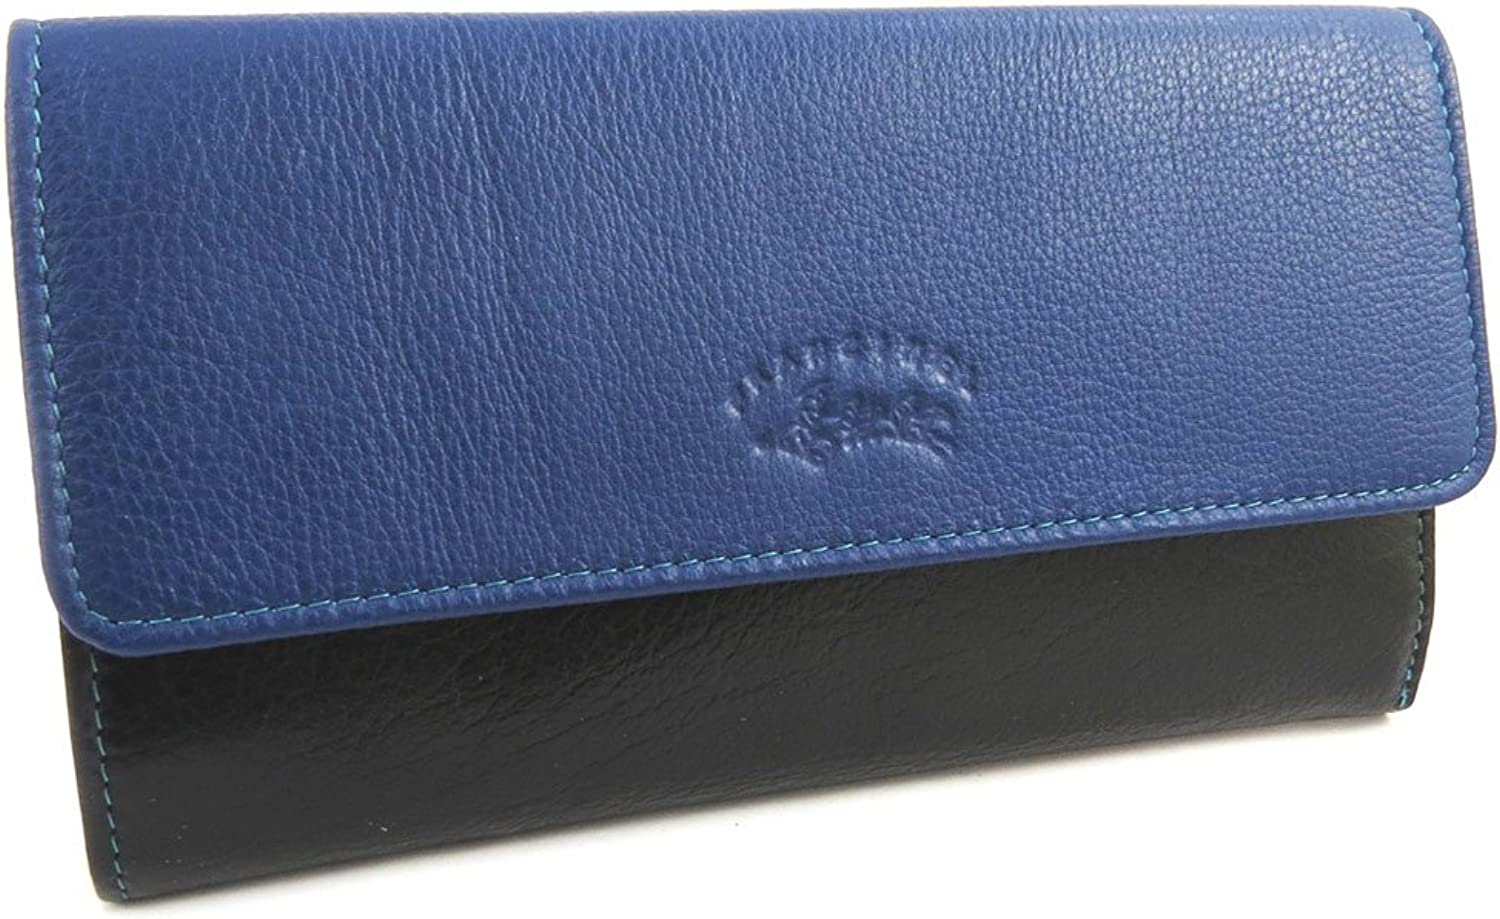 Great card holder 'Troubadour' bluee multicolord.